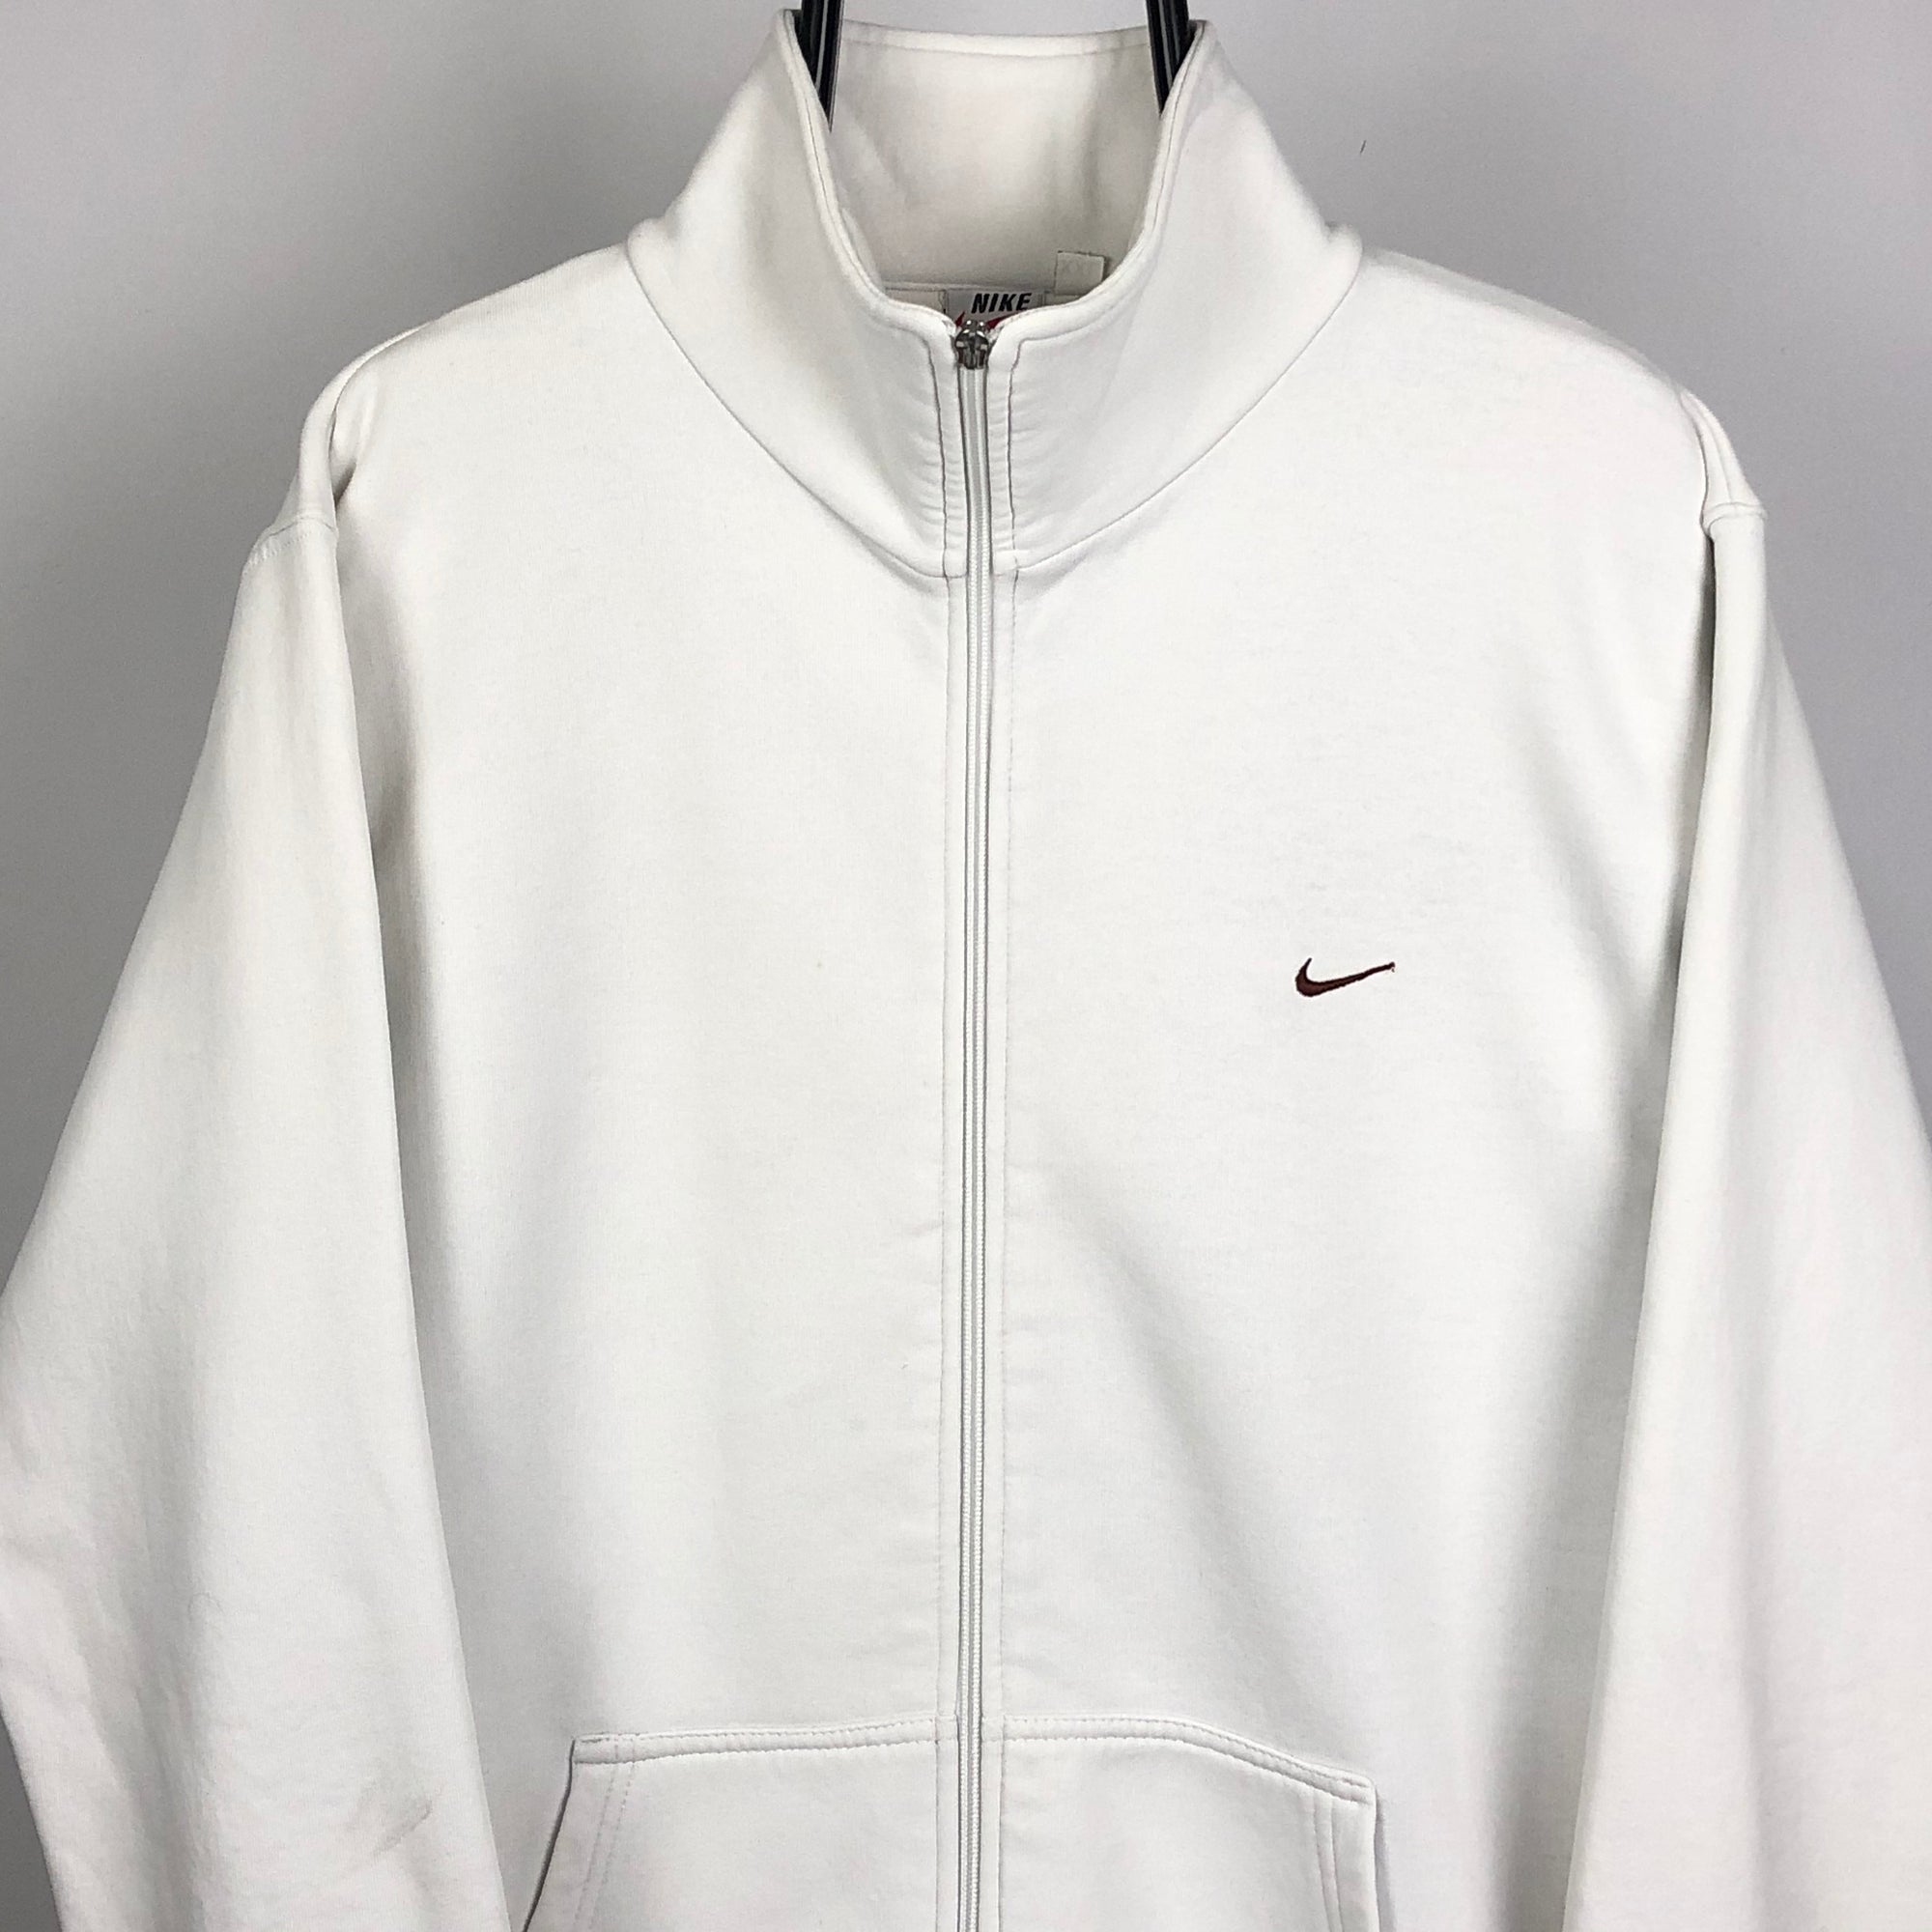 Nike Zip Up Sweatshirt in White - Men's Large/Women's XL